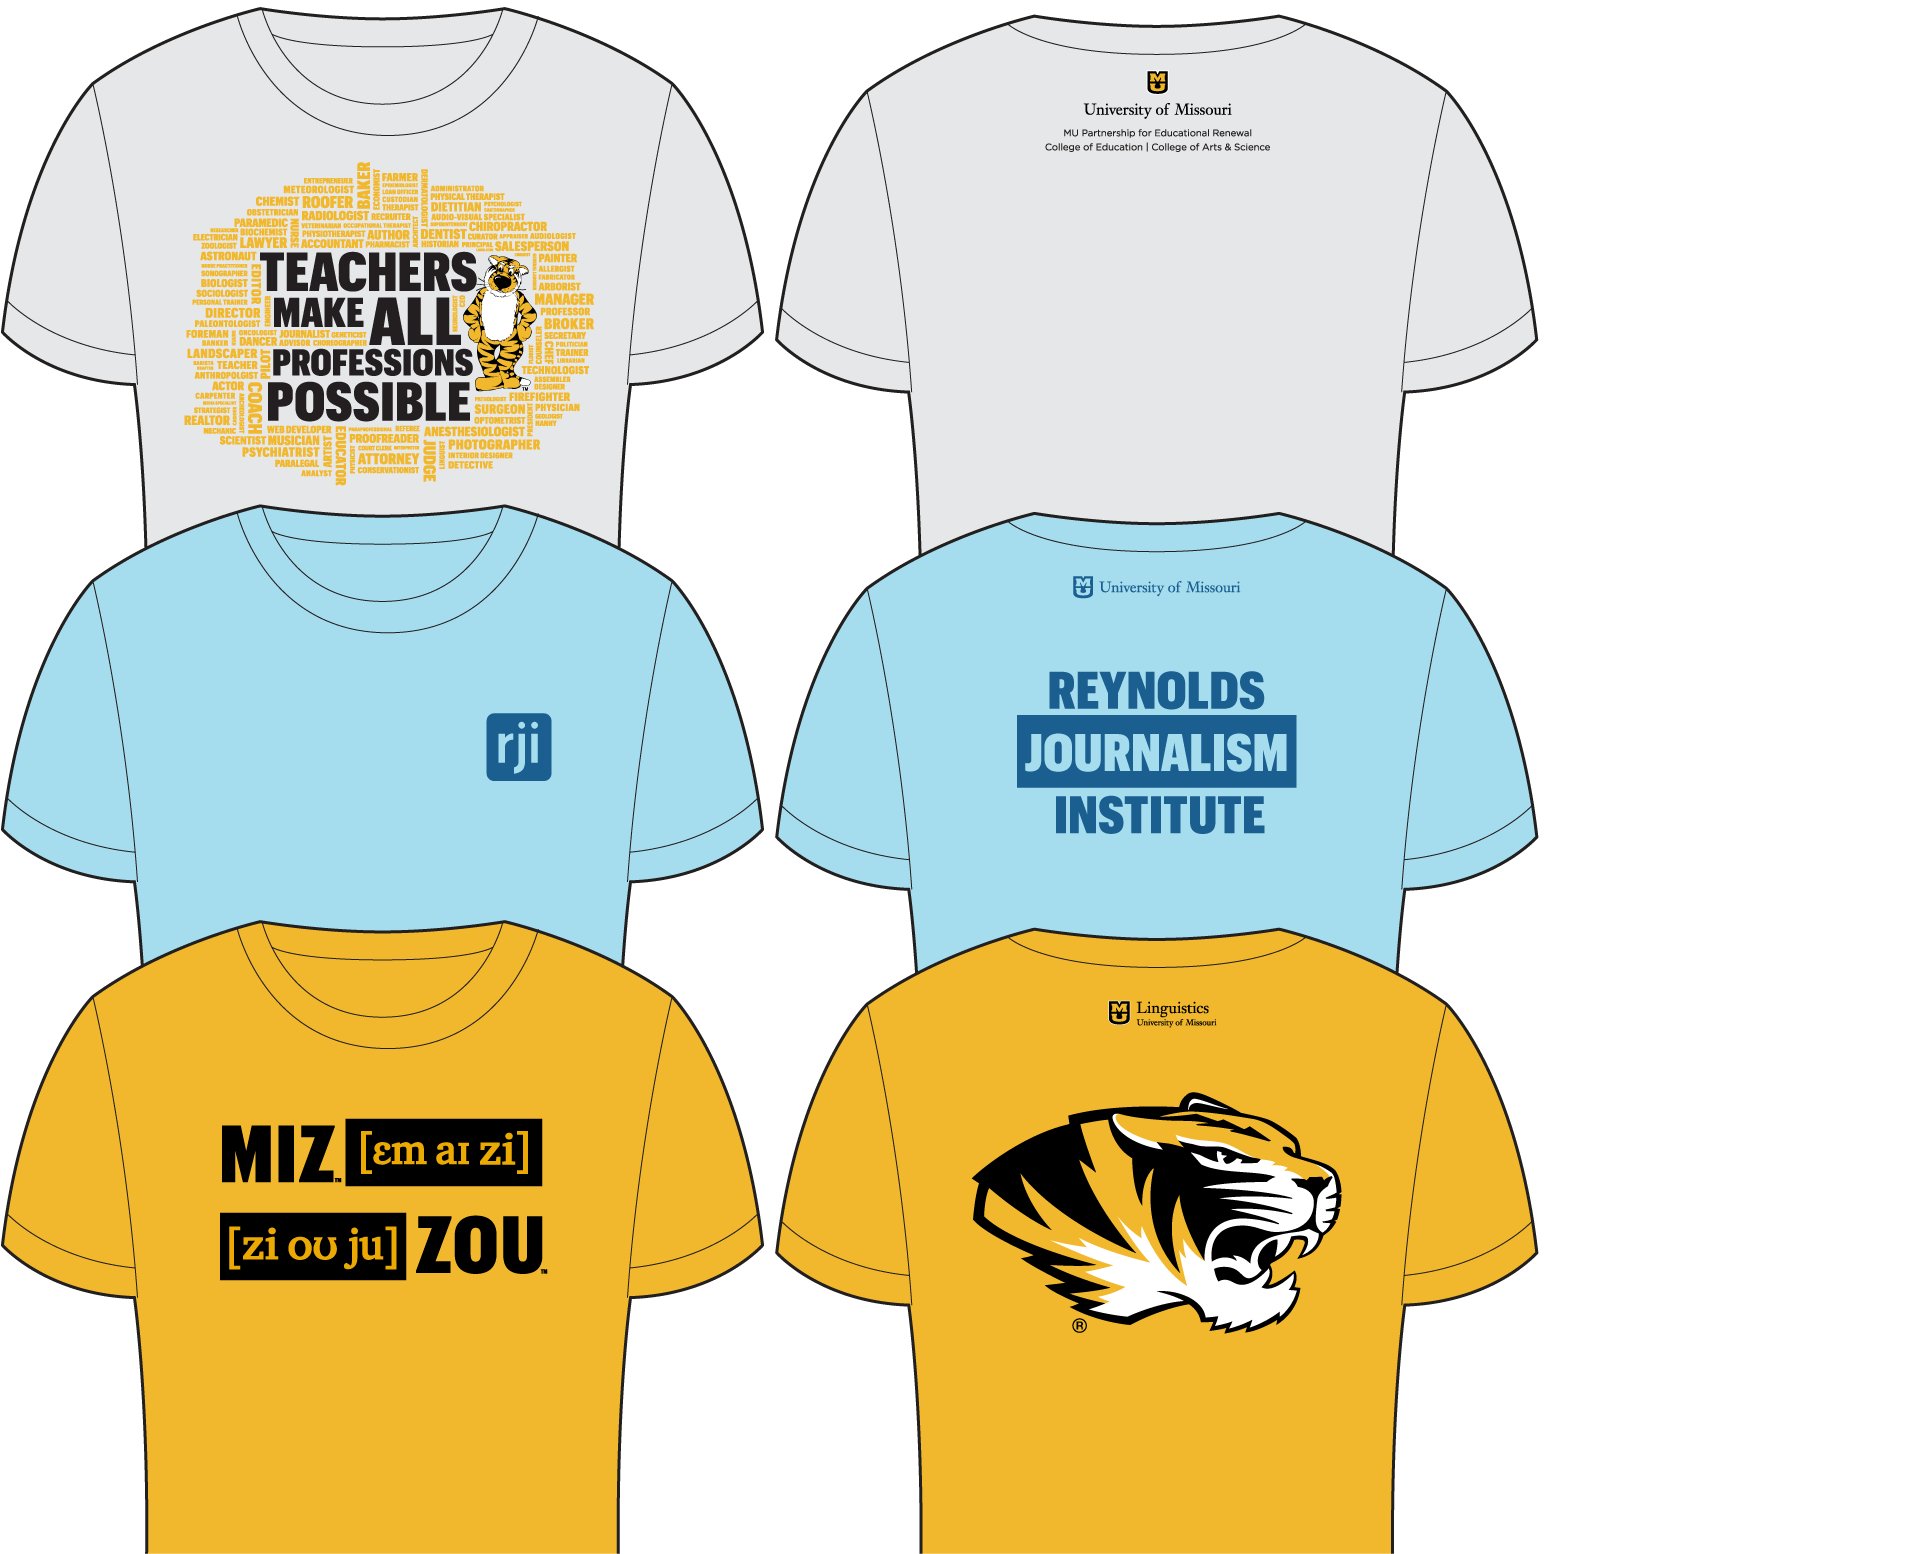 Examples of tshirts with 2-imprint areas that meet university campus department guidelines.